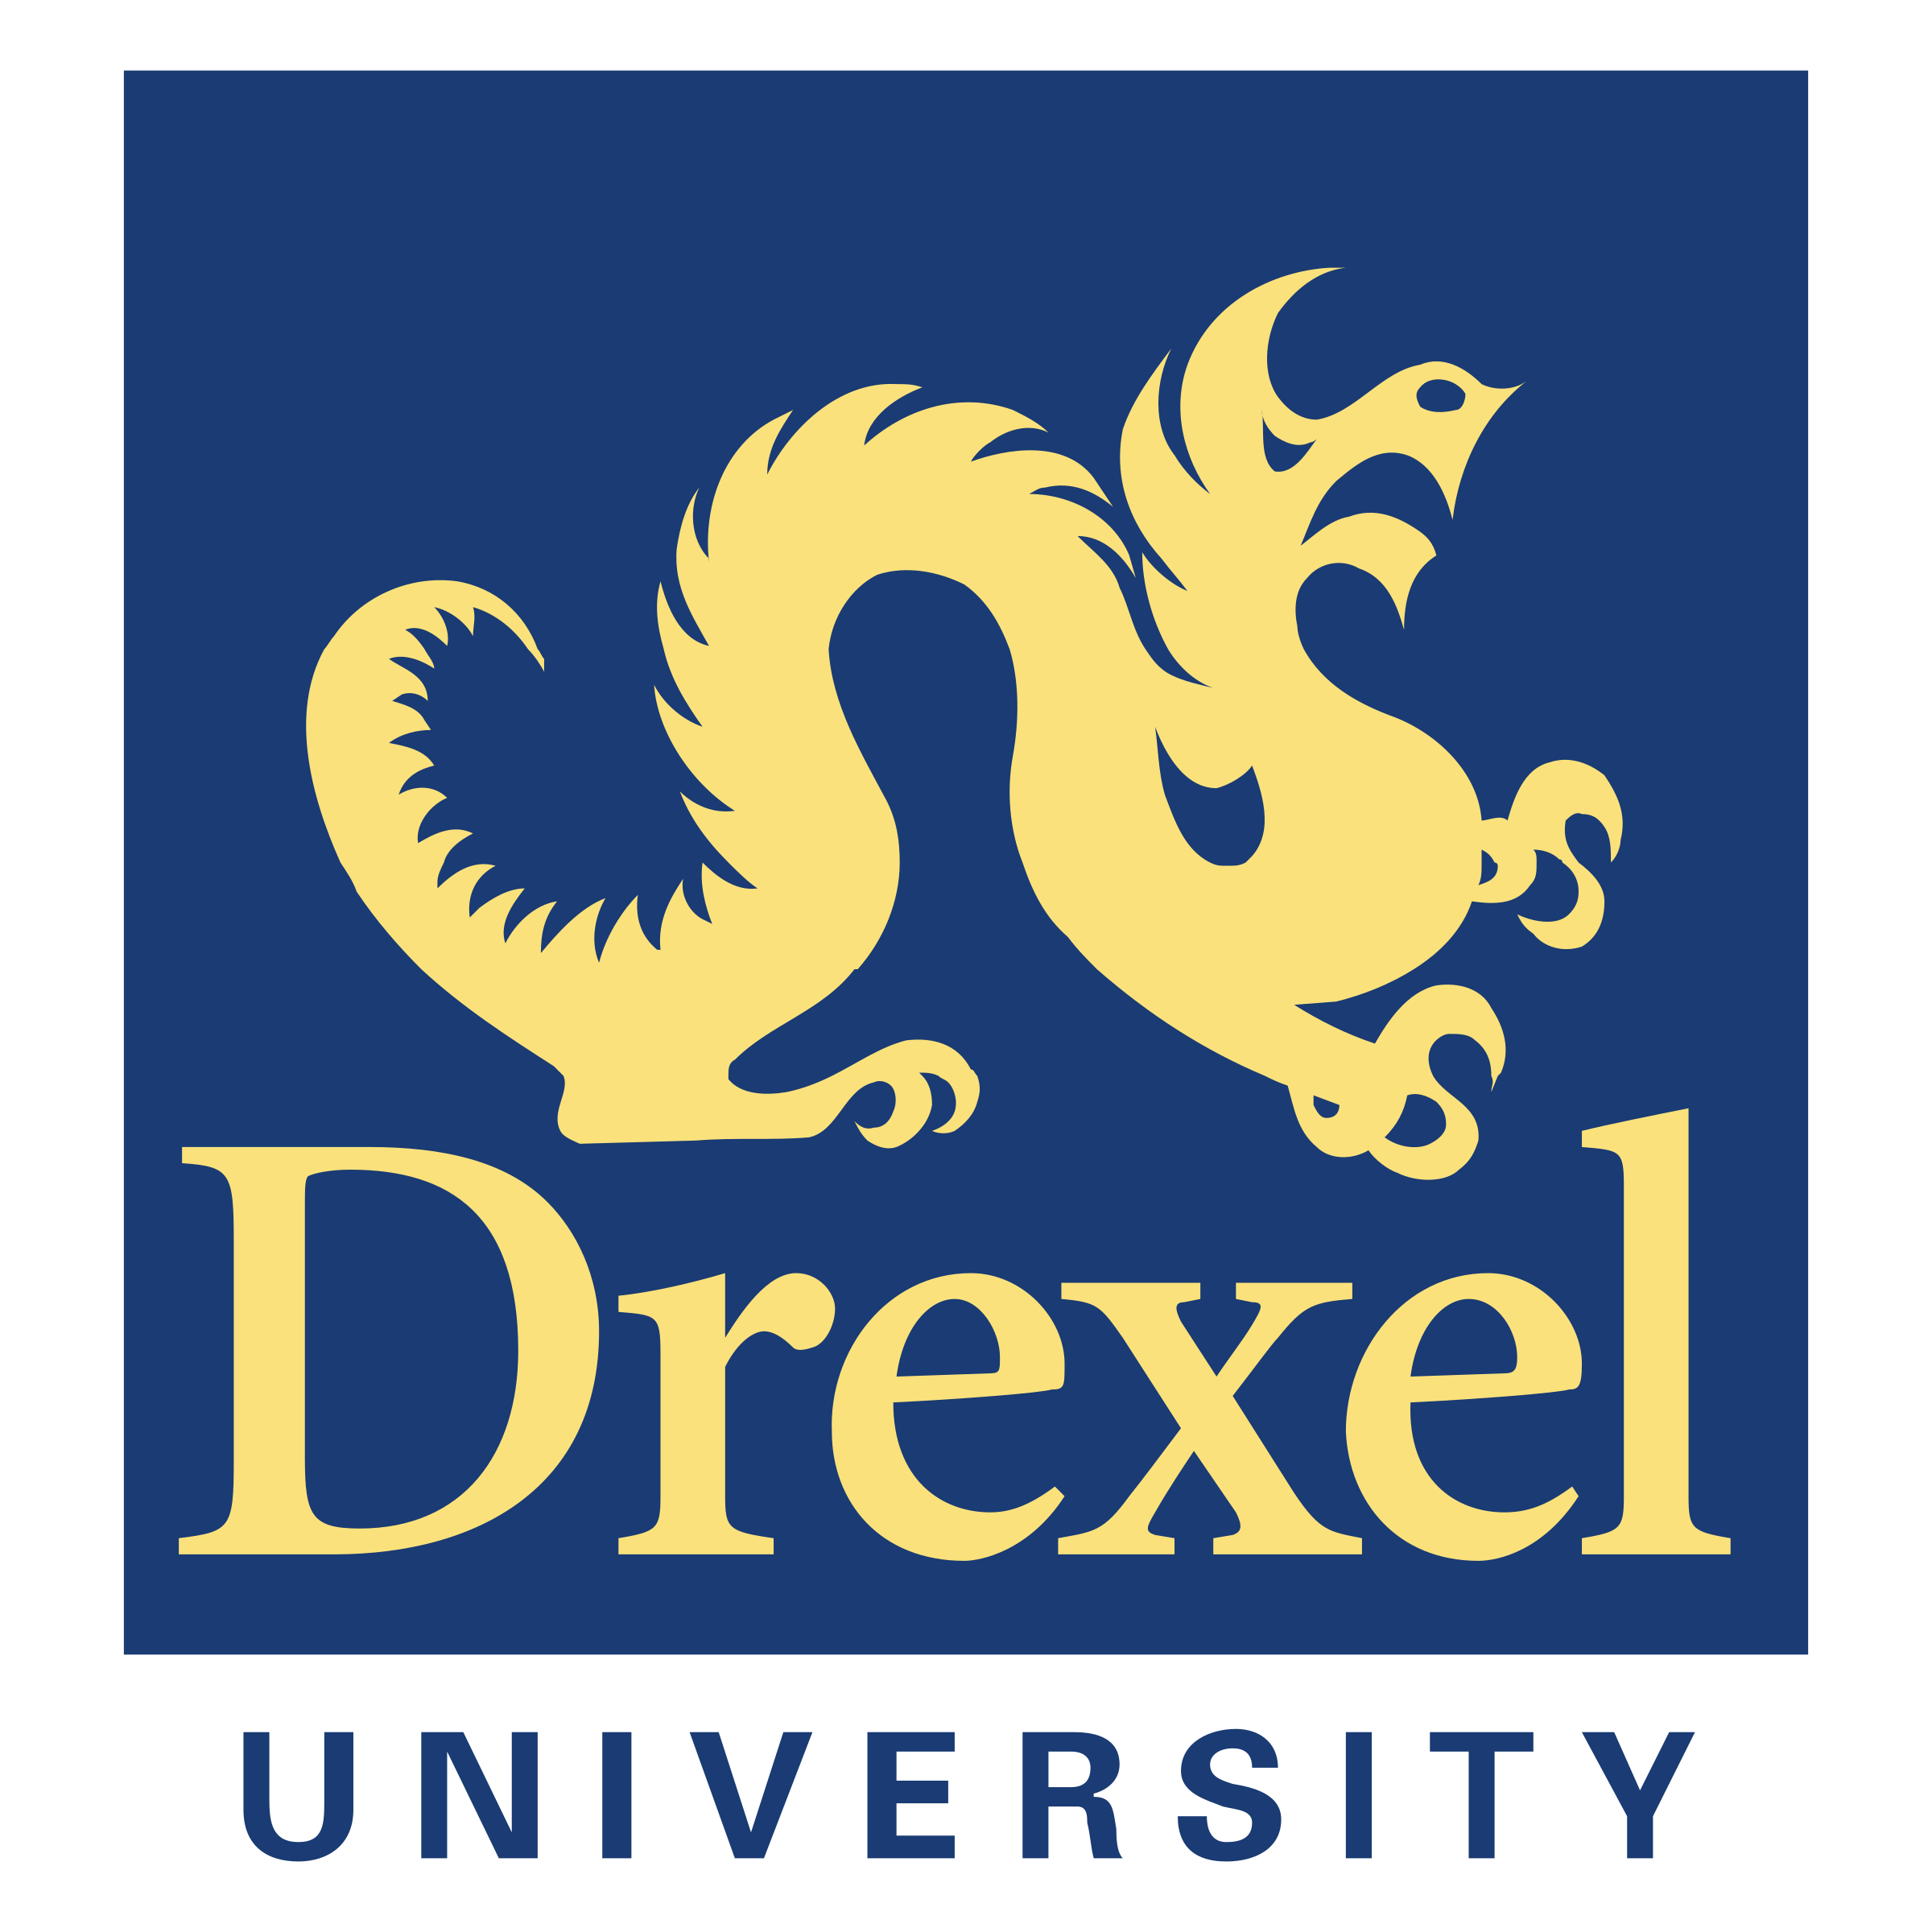 drexel-university-logo-png-transparent.png